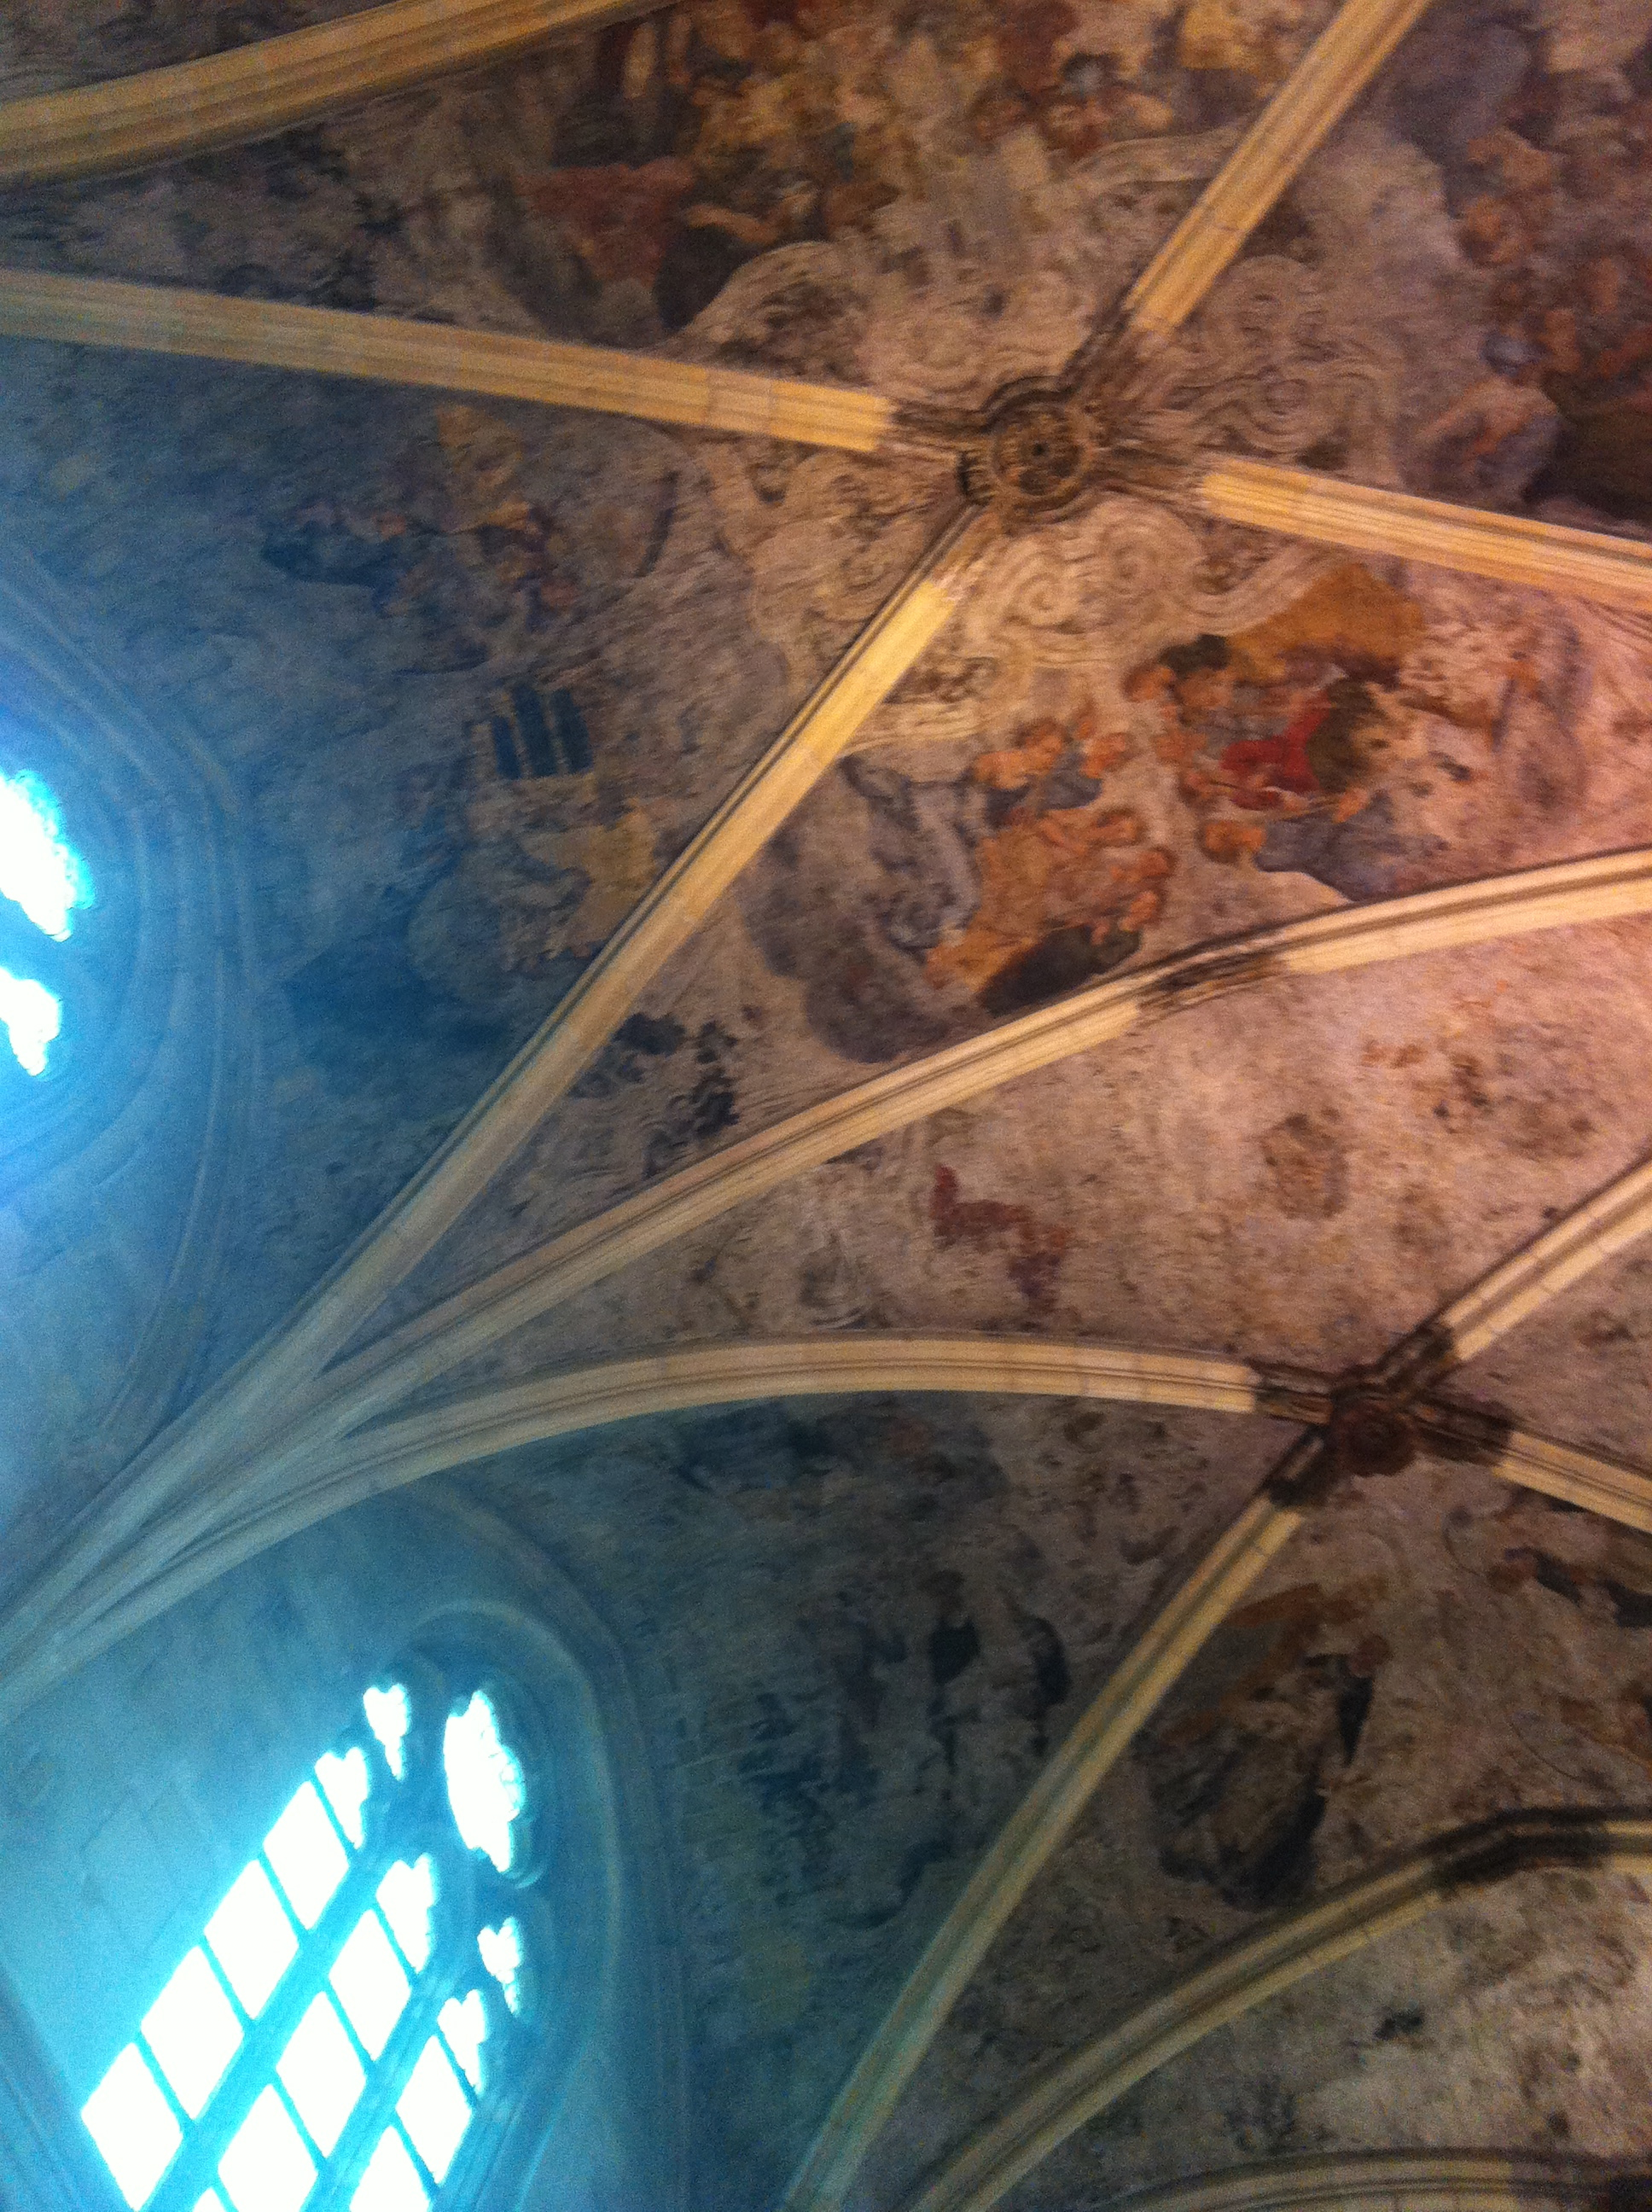 Ceiling of the Dominican bookstore.